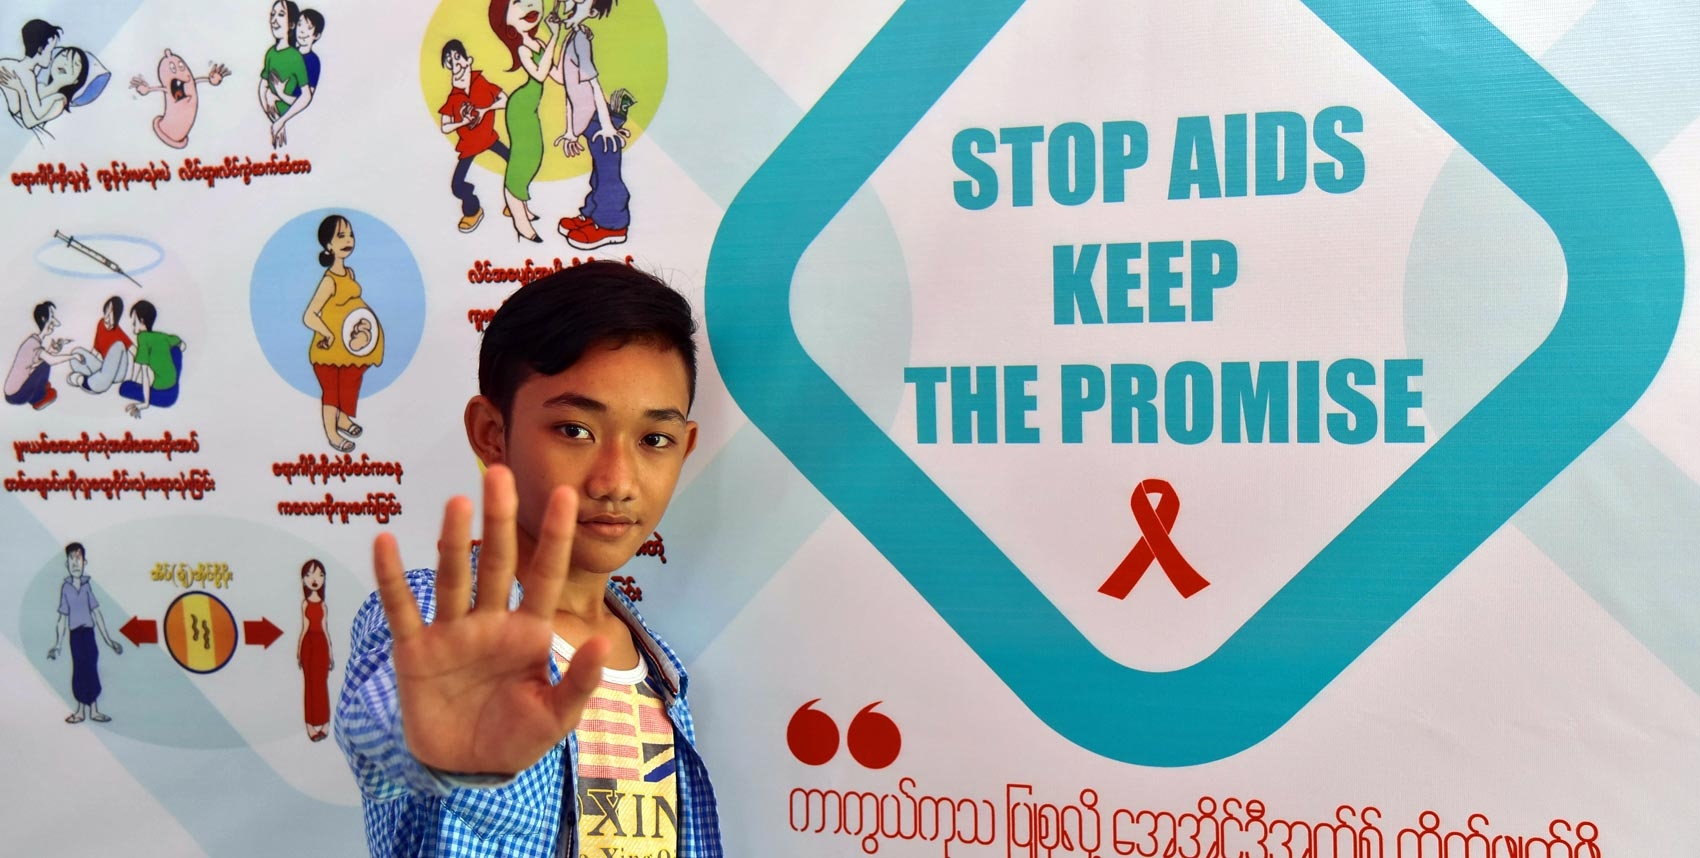 A young man gestures stop in front of a poster that says 'Stop AIDS Keep the Promise'